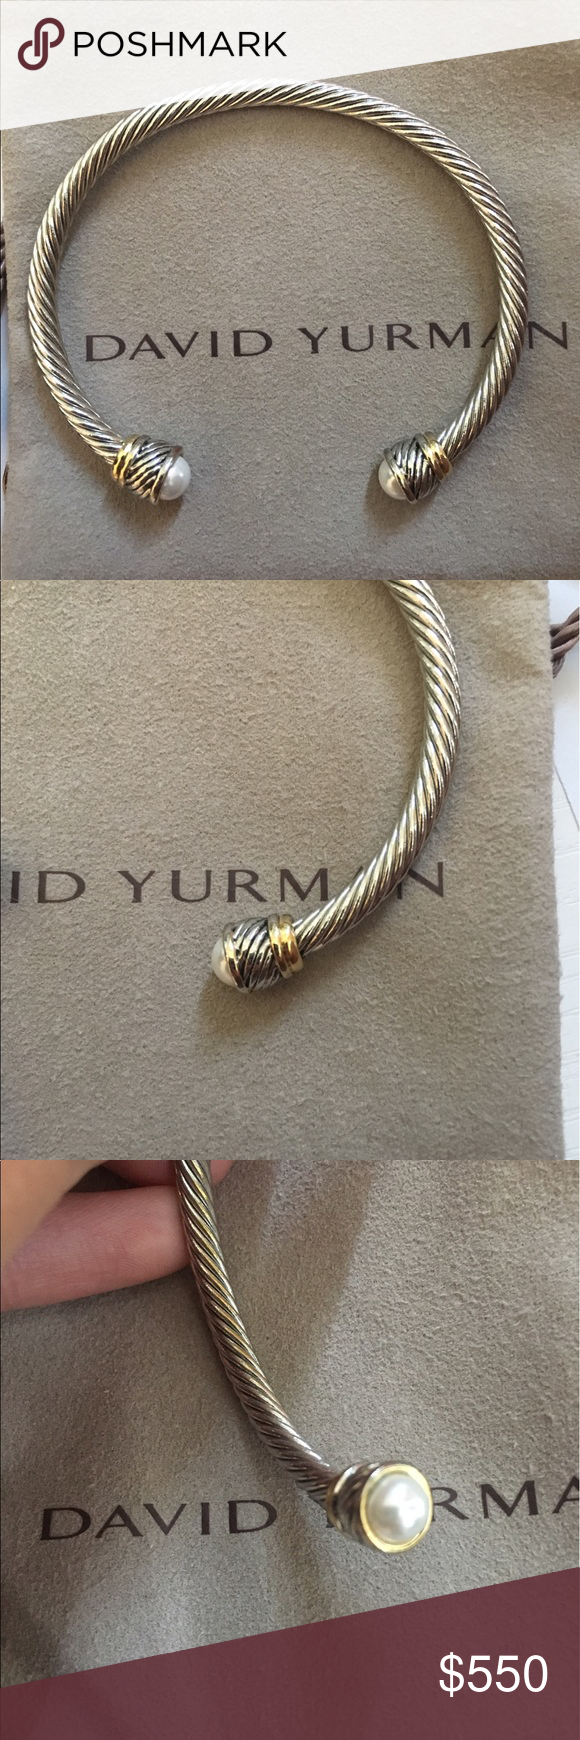 David Yurman Replica Cable Bracelet Silver With Gold Accent And